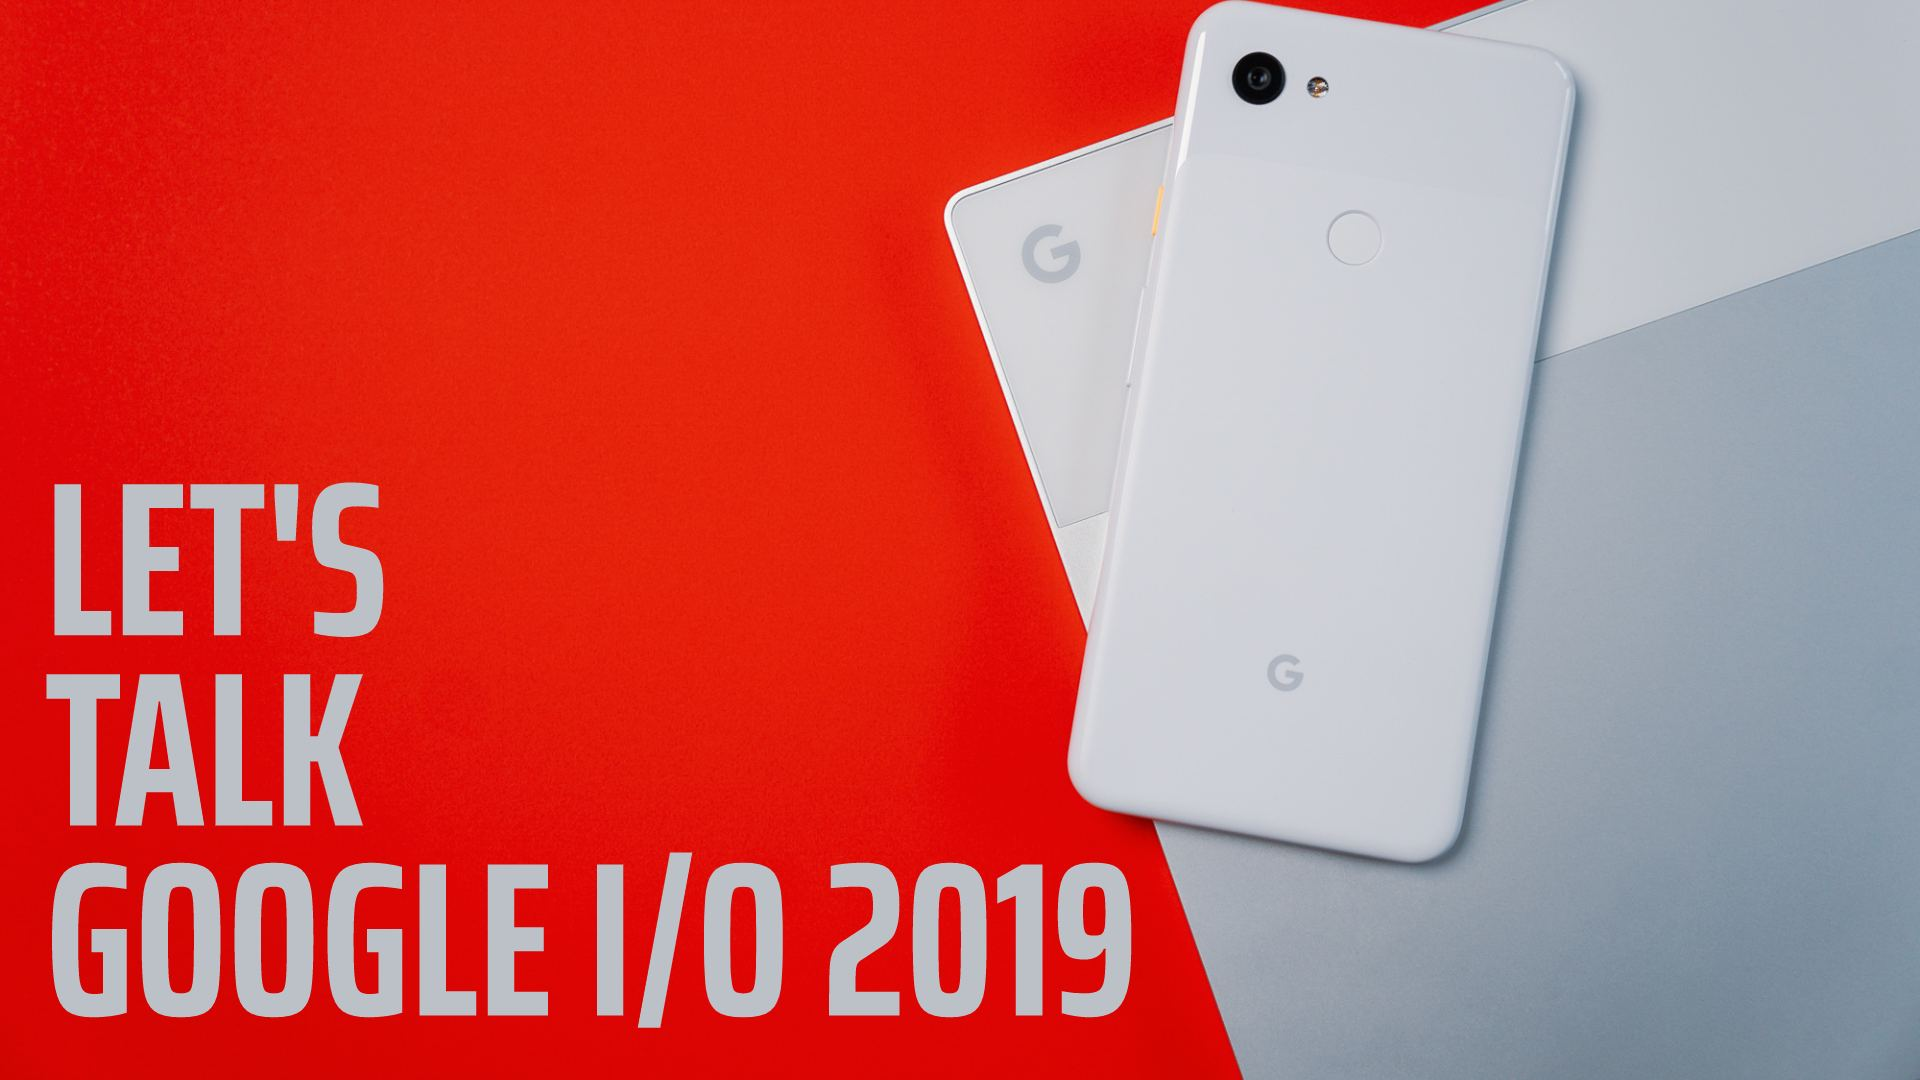 Google I/O 2019 Wrap-Up [VIDEO]